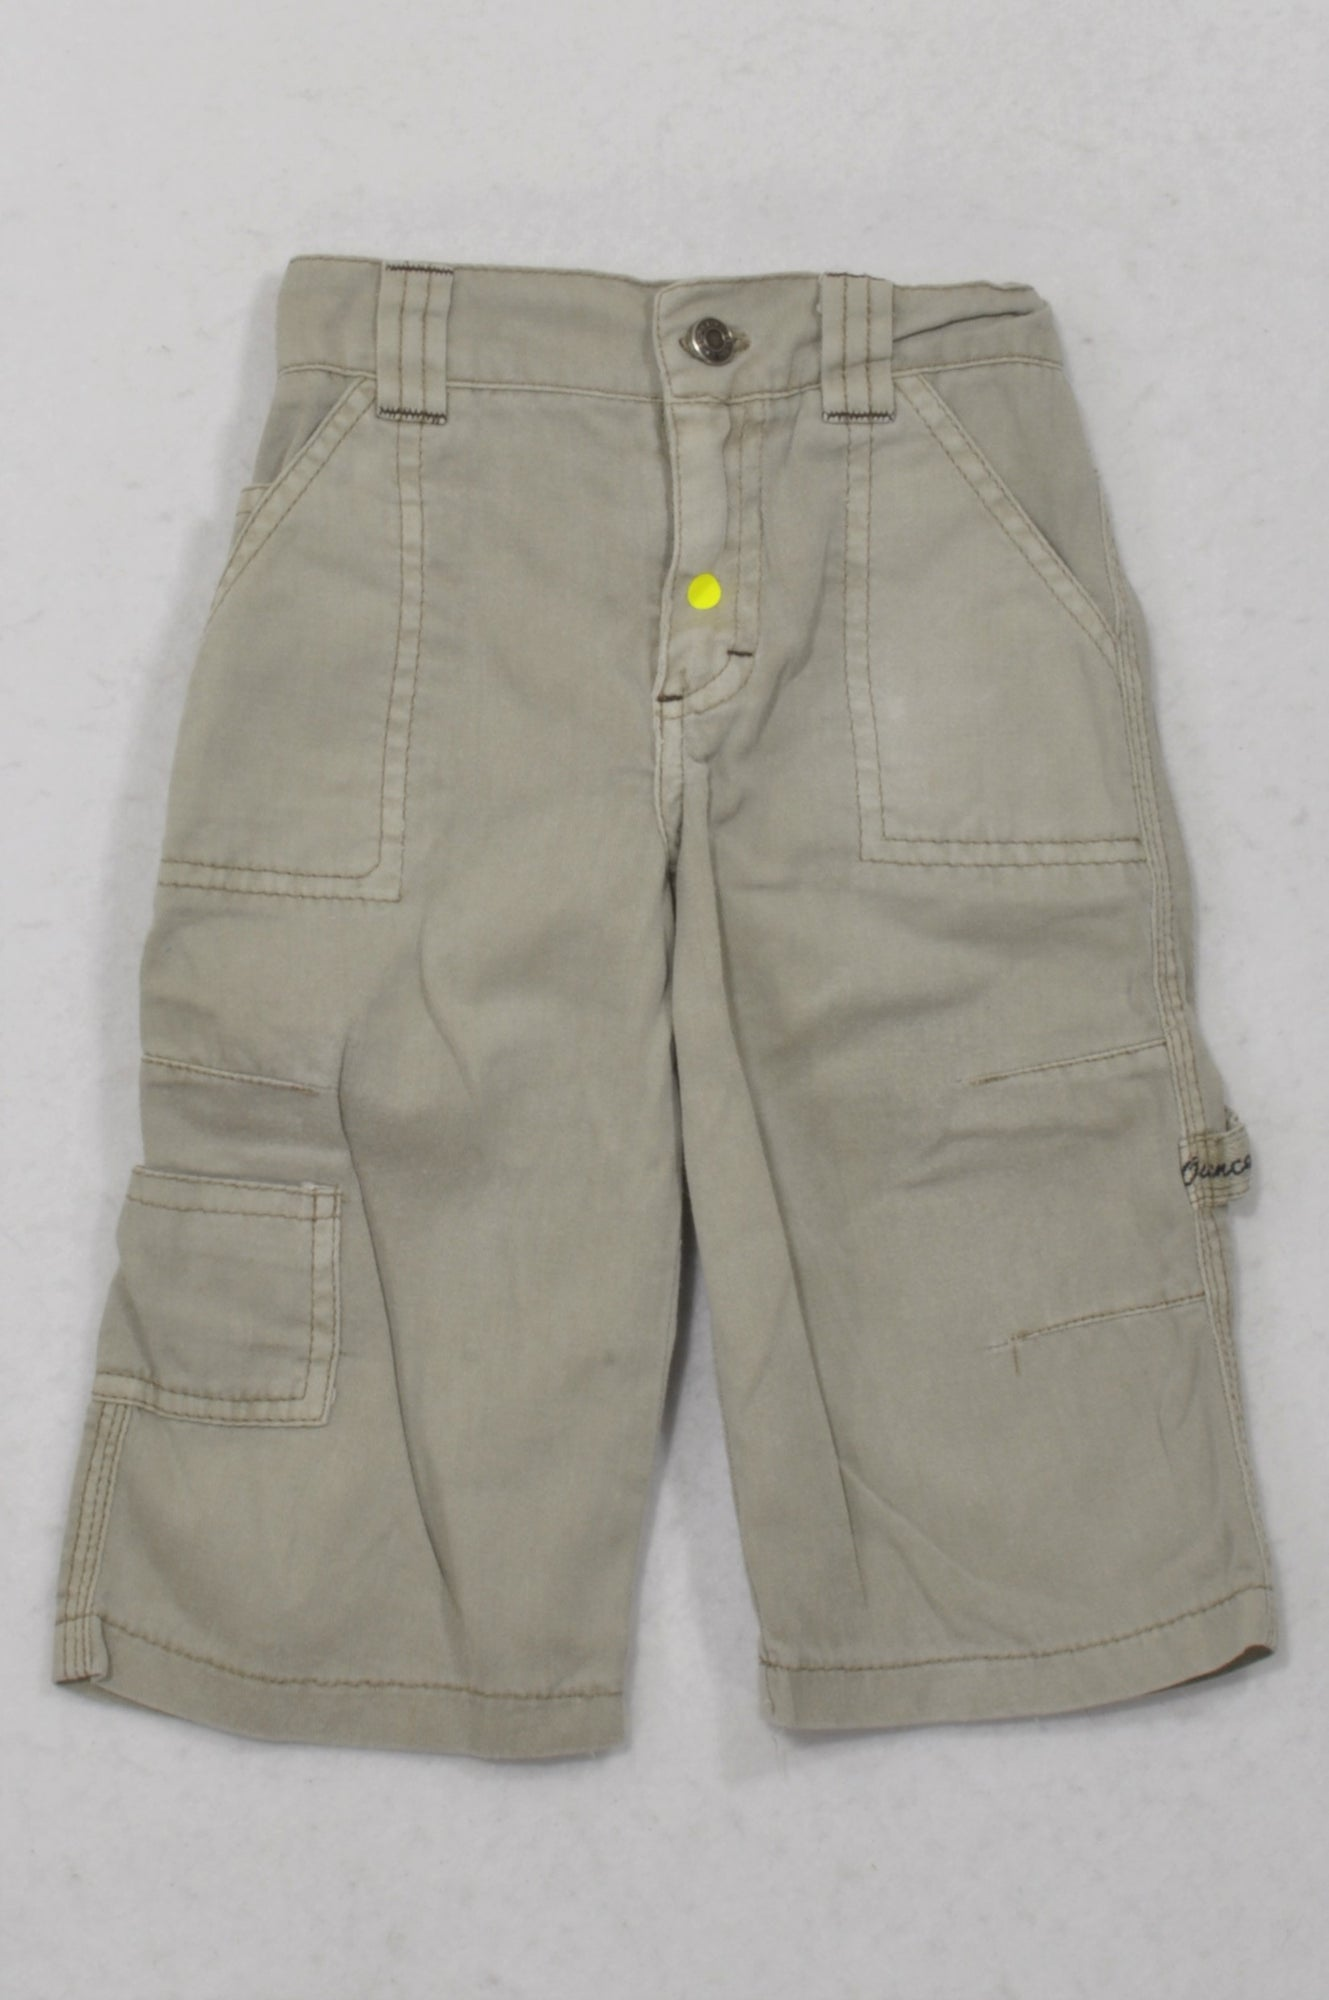 7 Ounce Stone Distressed Cargo Pants Boys 1-2 years